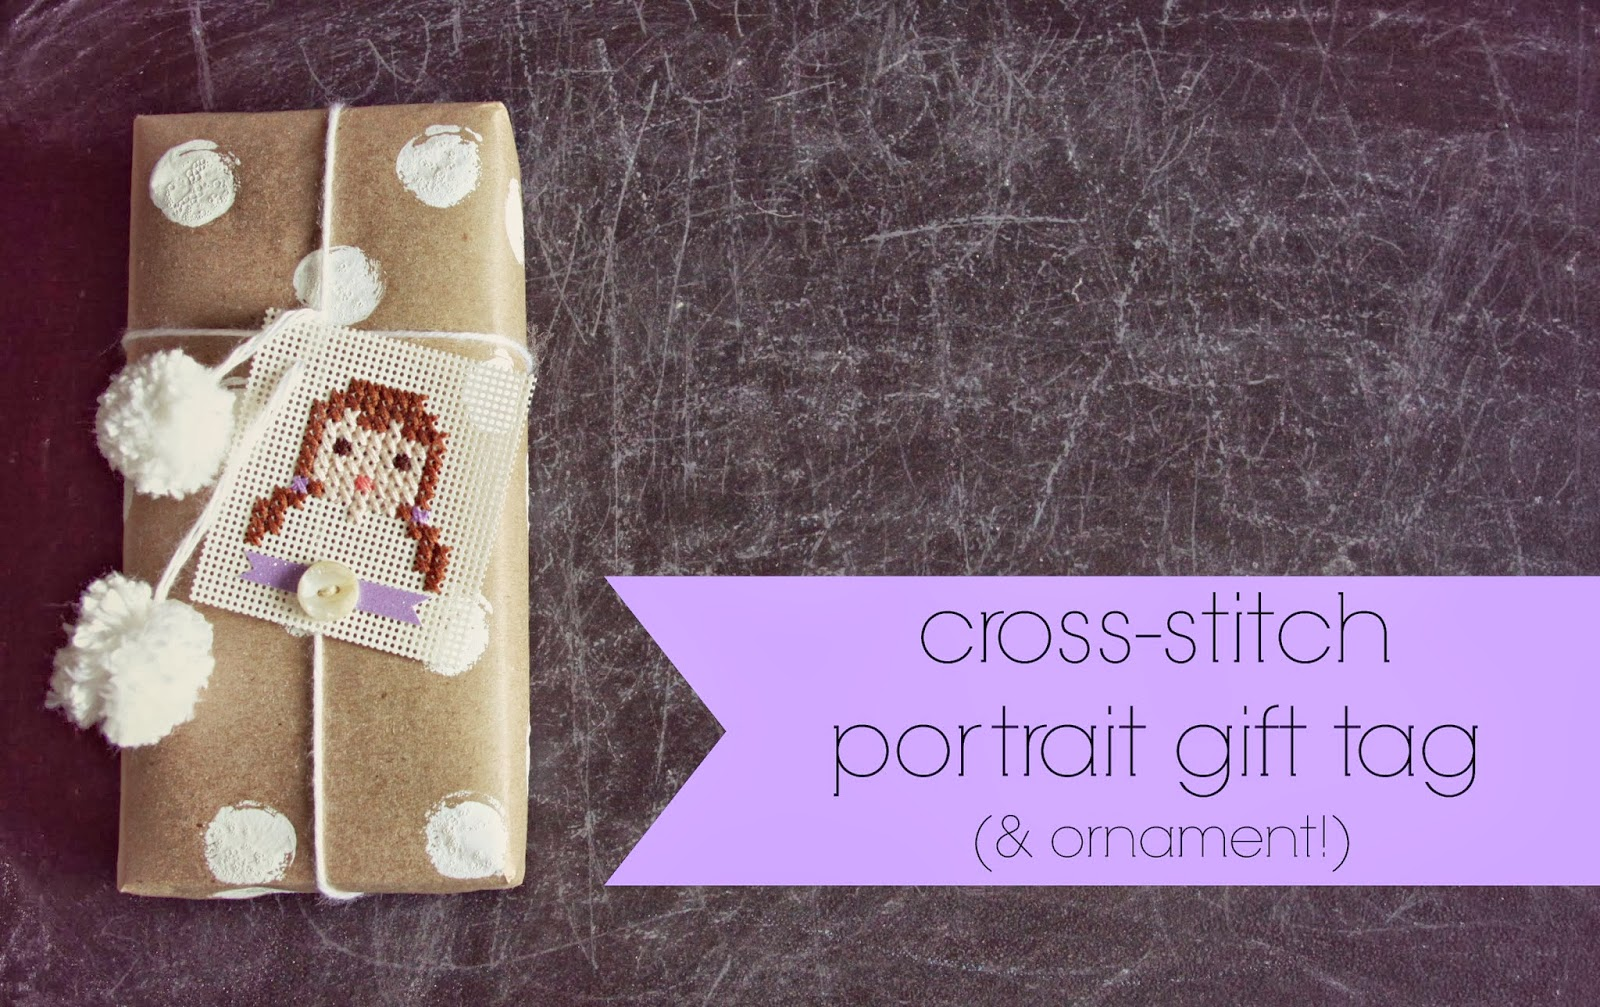 WhiMSy loveDIYCross-stitch Paper Portrait Gift Tags ( ornaments!)